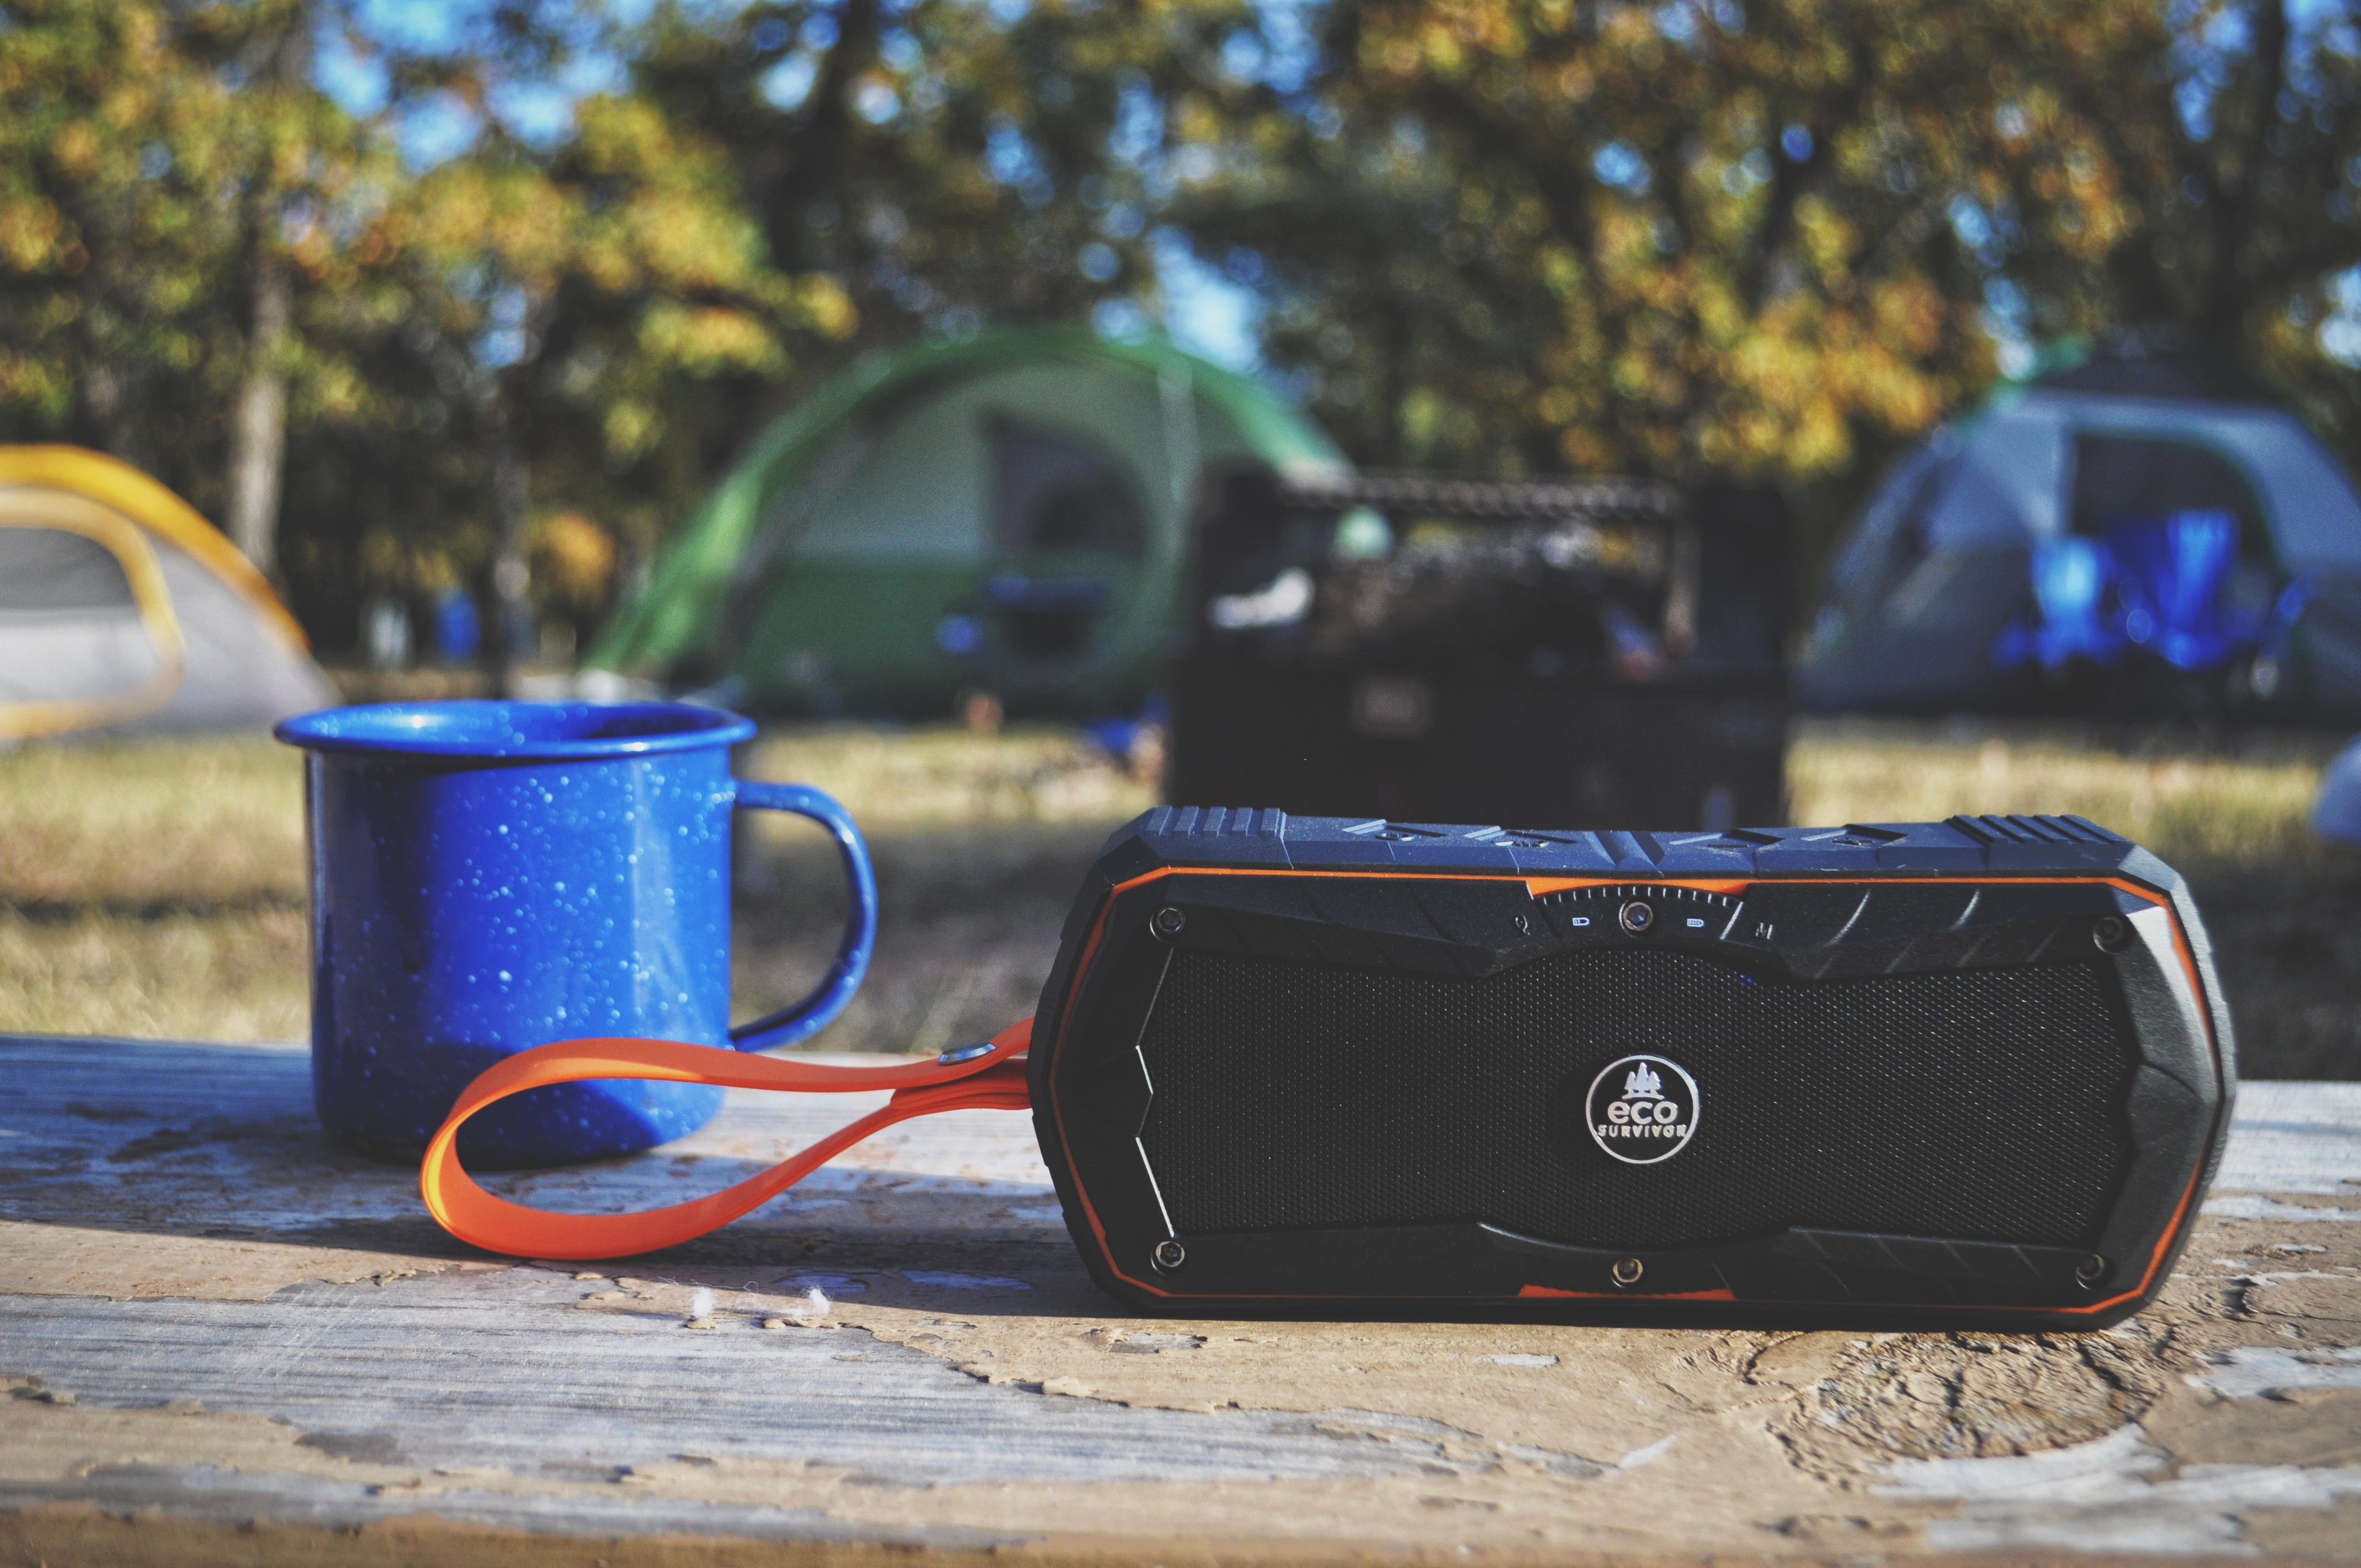 EcoSurvivor-battery-bluetooth-speaker-phone-charger-outdoor